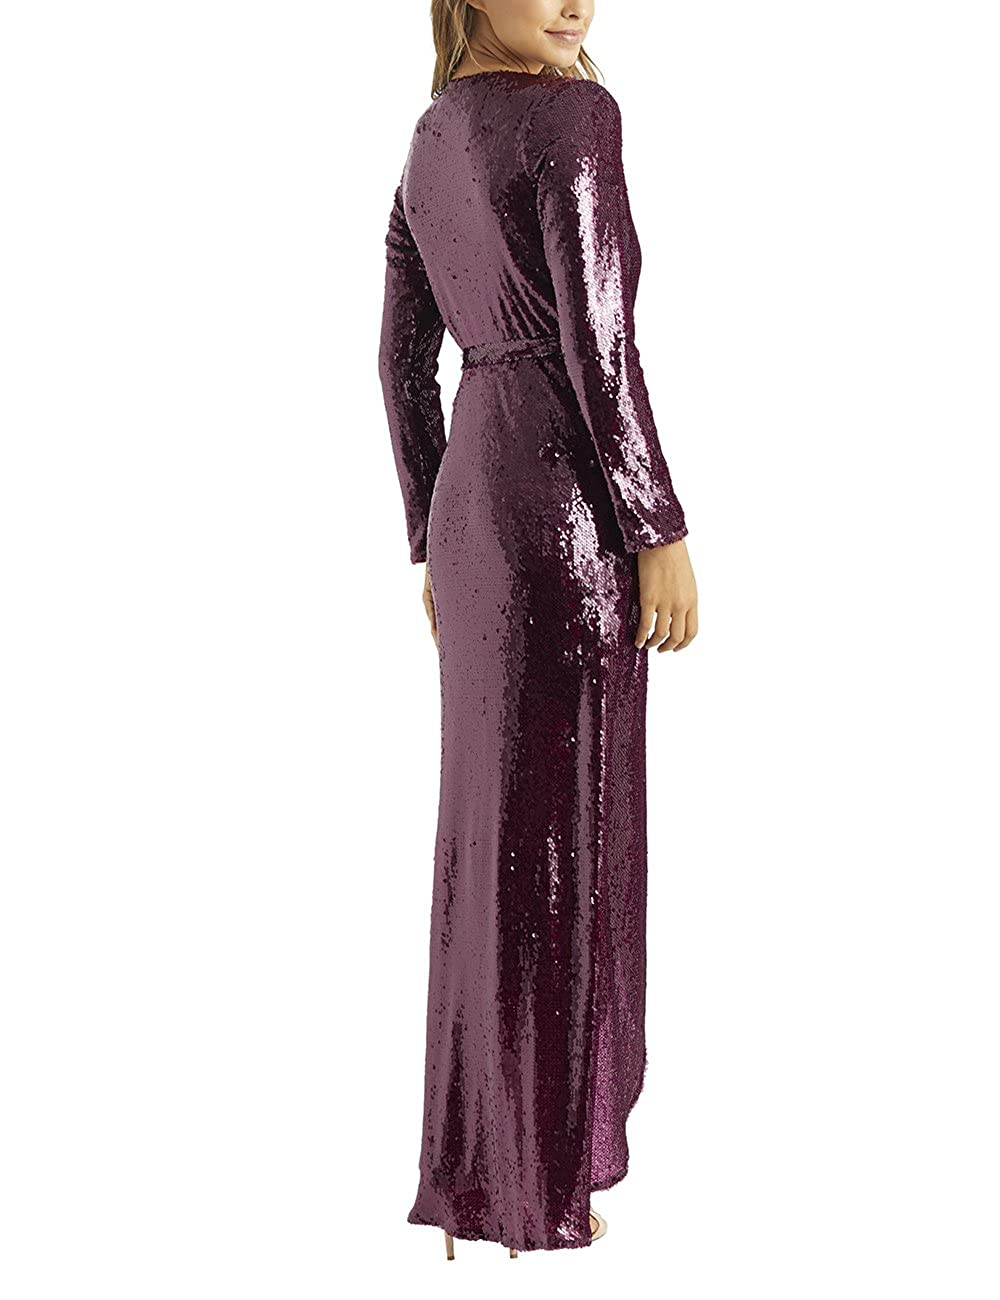 LIPSY Womens All Over Sequin Wrap Maxi Dress - Red -: Amazon.co.uk ...